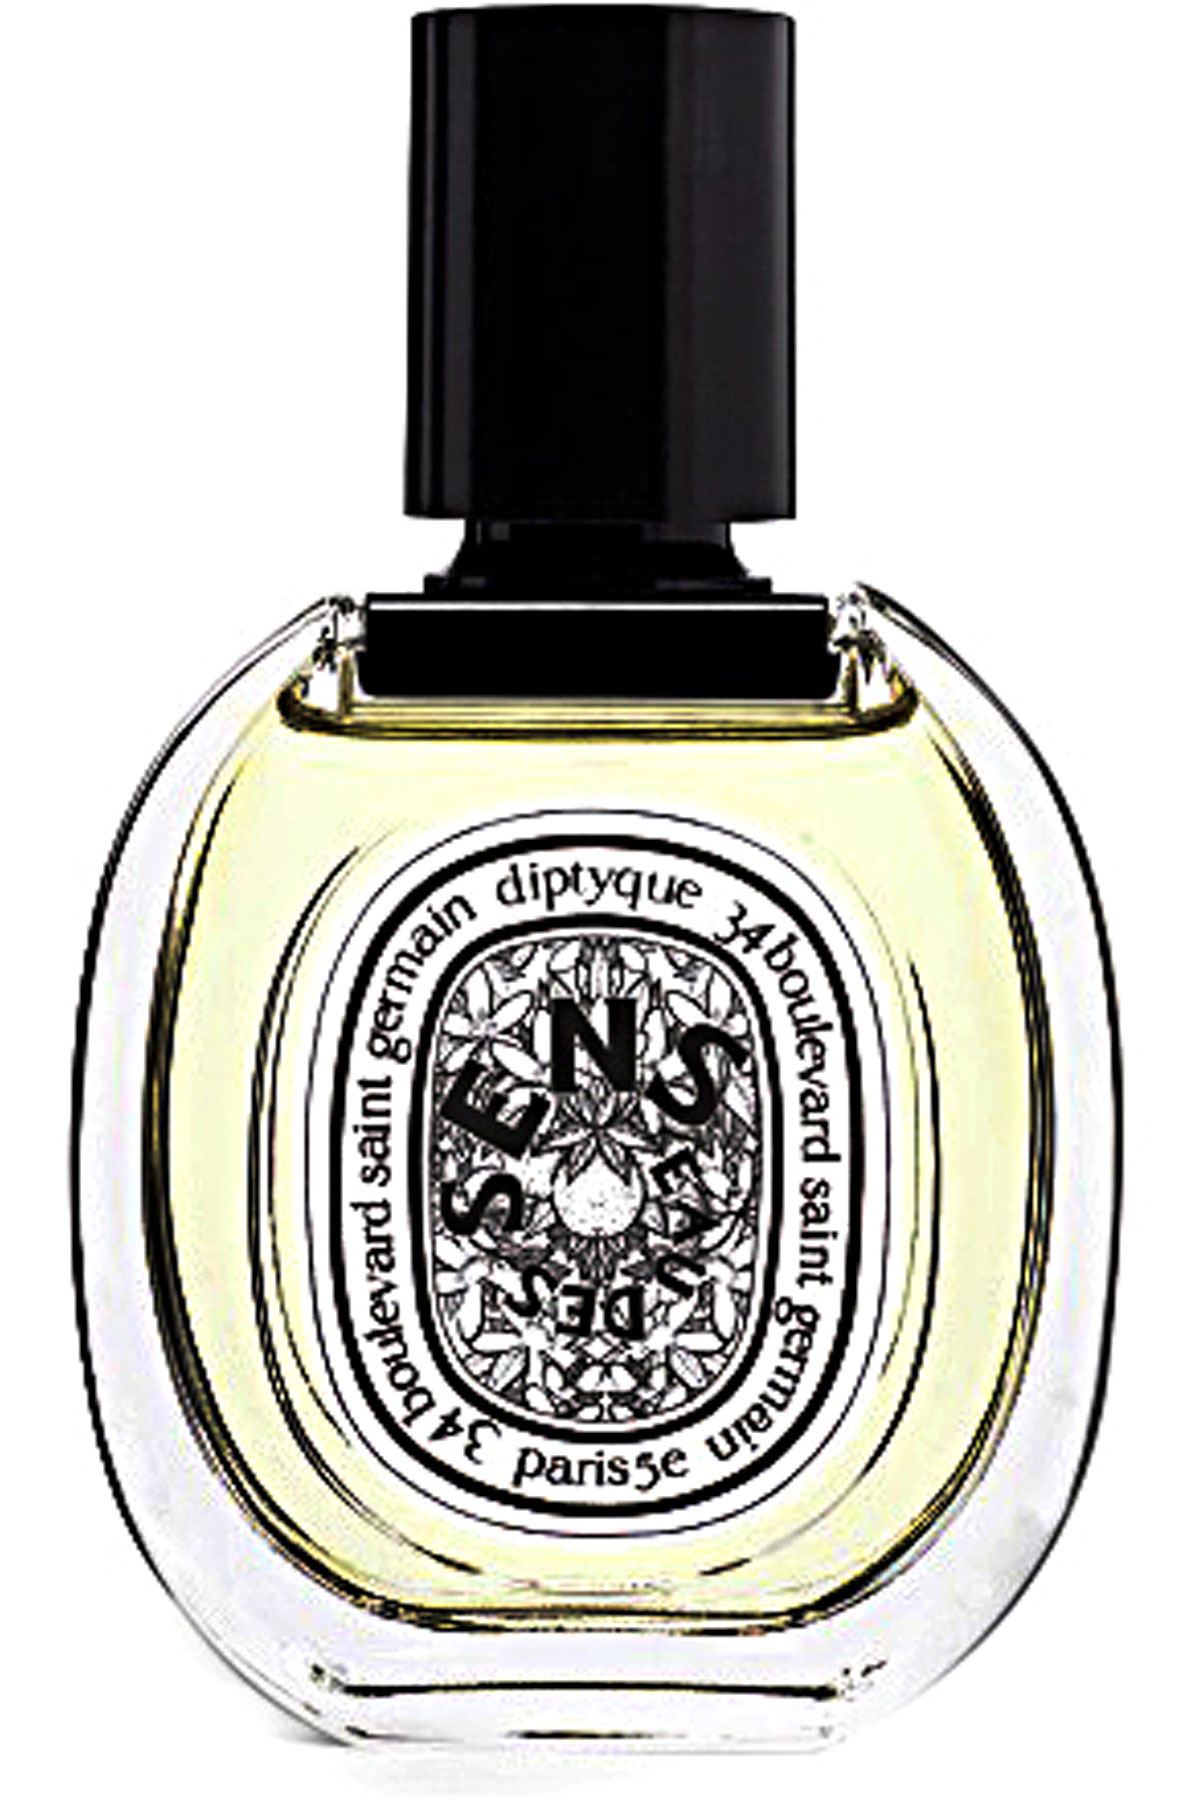 Diptyque Fragrances for Men, Eau De Sens - Eau De Toilette - 50 Ml, 2019, 50 ml